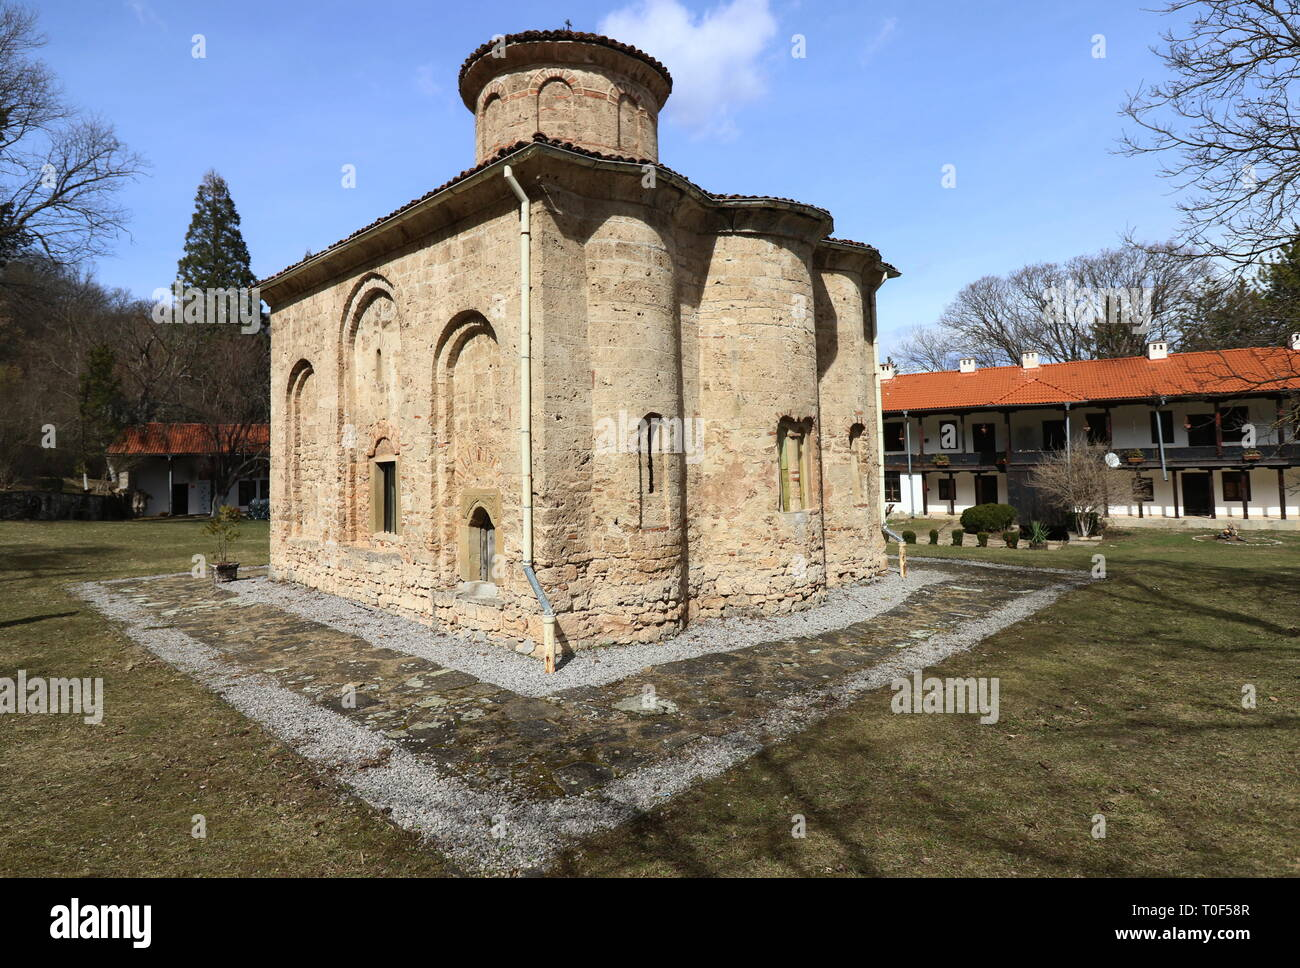 Zemen, Bulgaria - March 16, 2019: The church of the ancient Zemen Monastery, Bulgaria. Orthodox monastery. Bulgarian orthodox monastery. - Stock Image